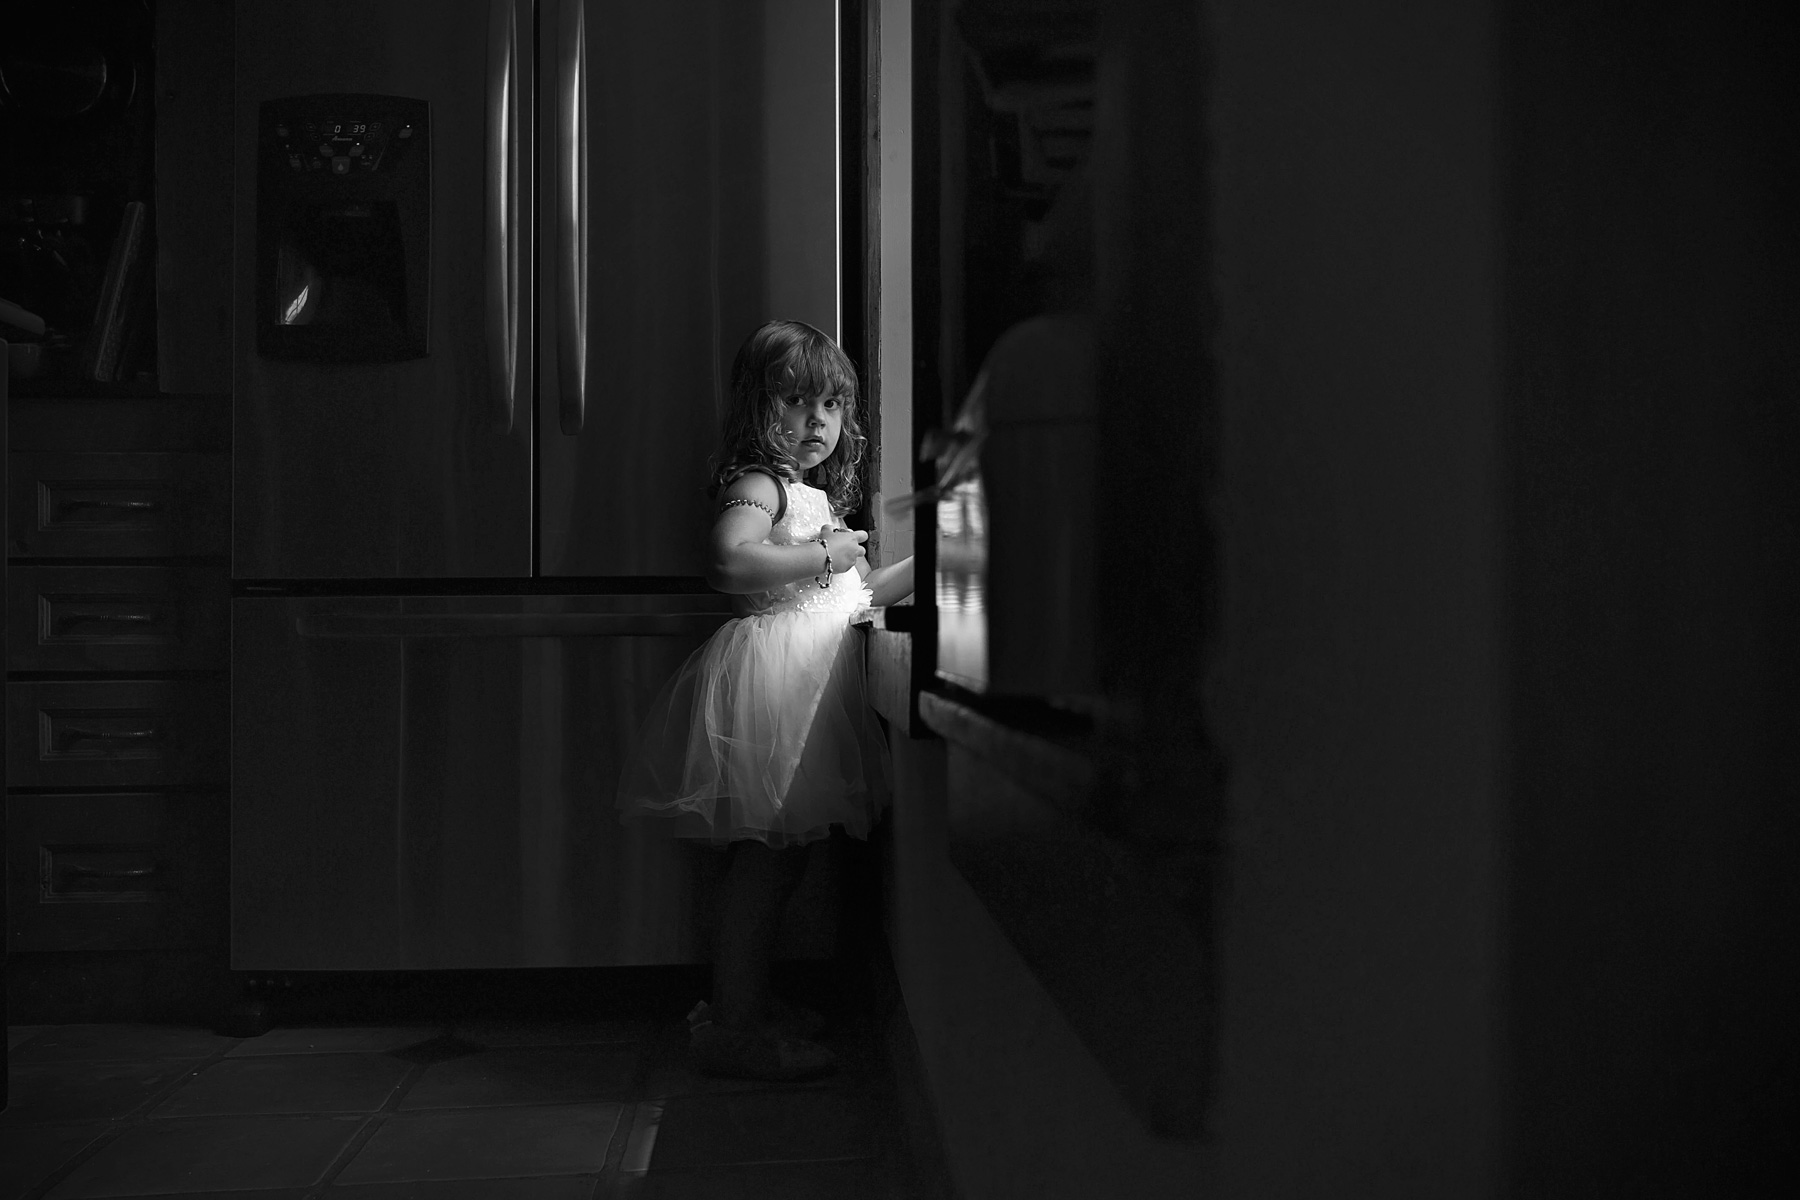 black and white of toddler girl in dress standing by window